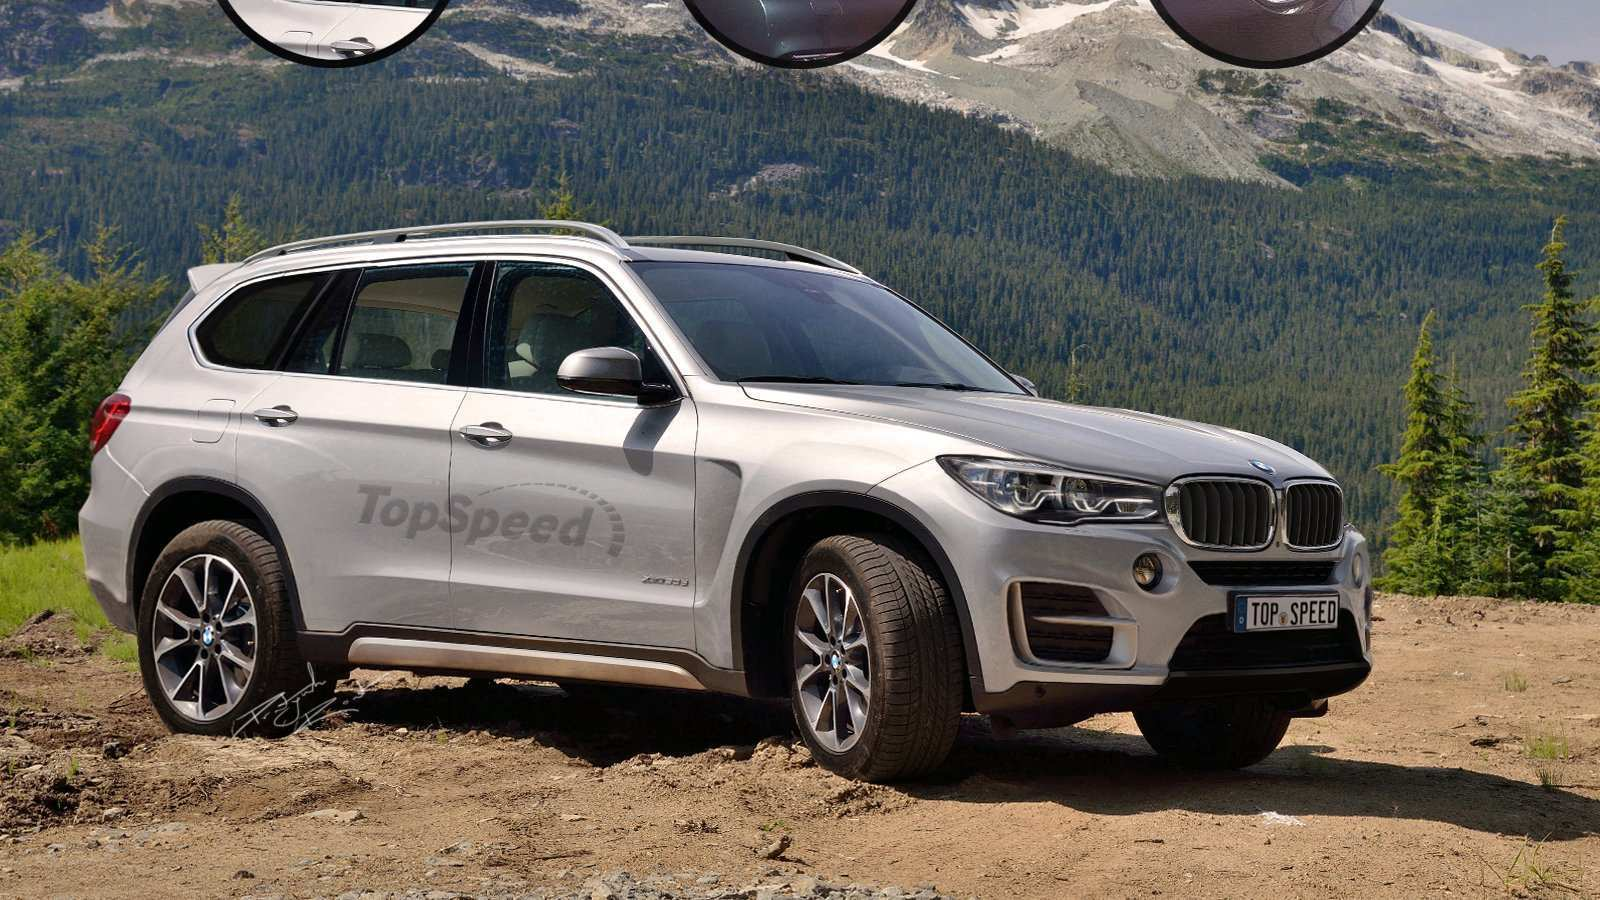 55 Concept of 2020 BMW X7 Suv Series Reviews with 2020 BMW X7 Suv Series